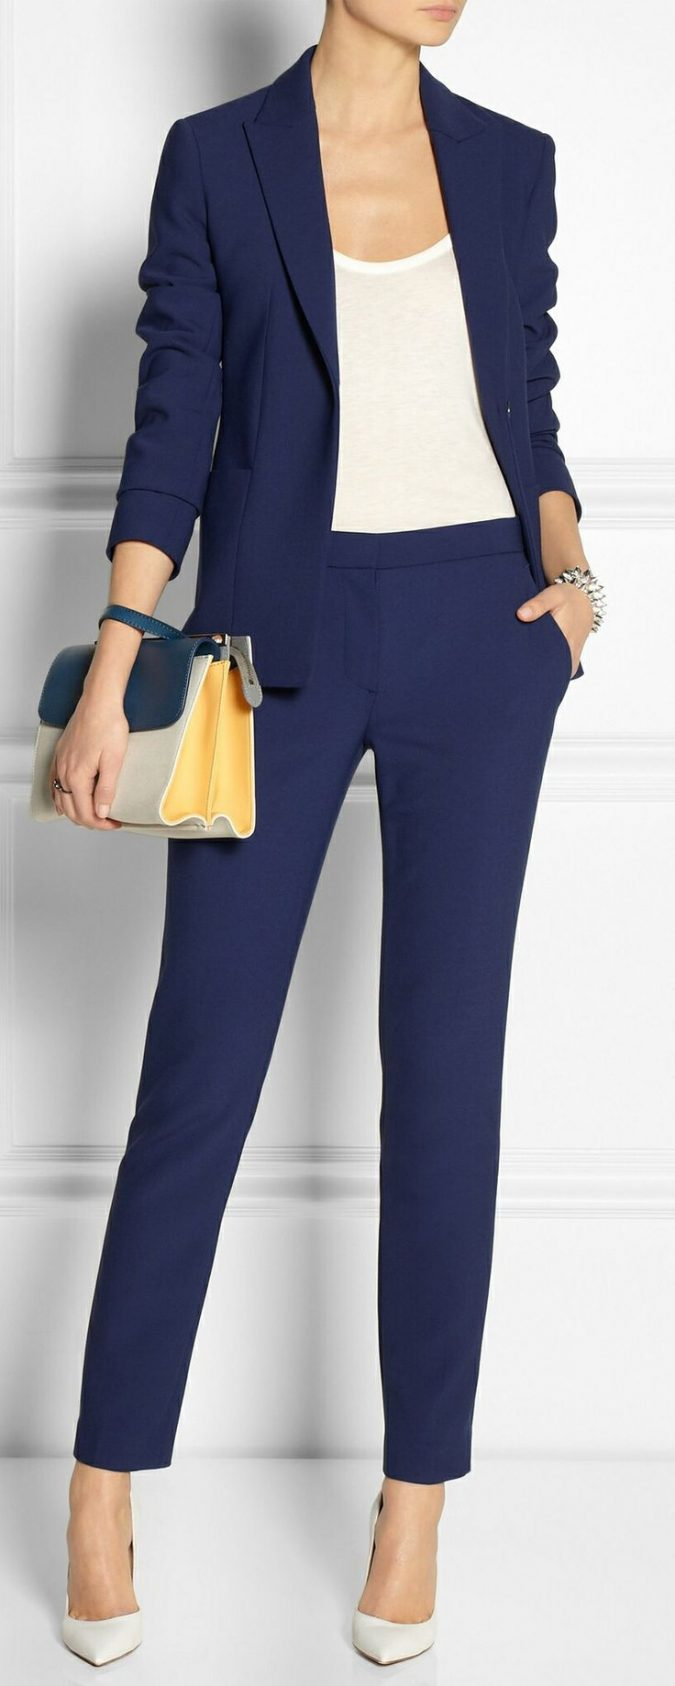 Colorful-Suit3-675x1686 Three Accessories That Brides Shouldn't Skip